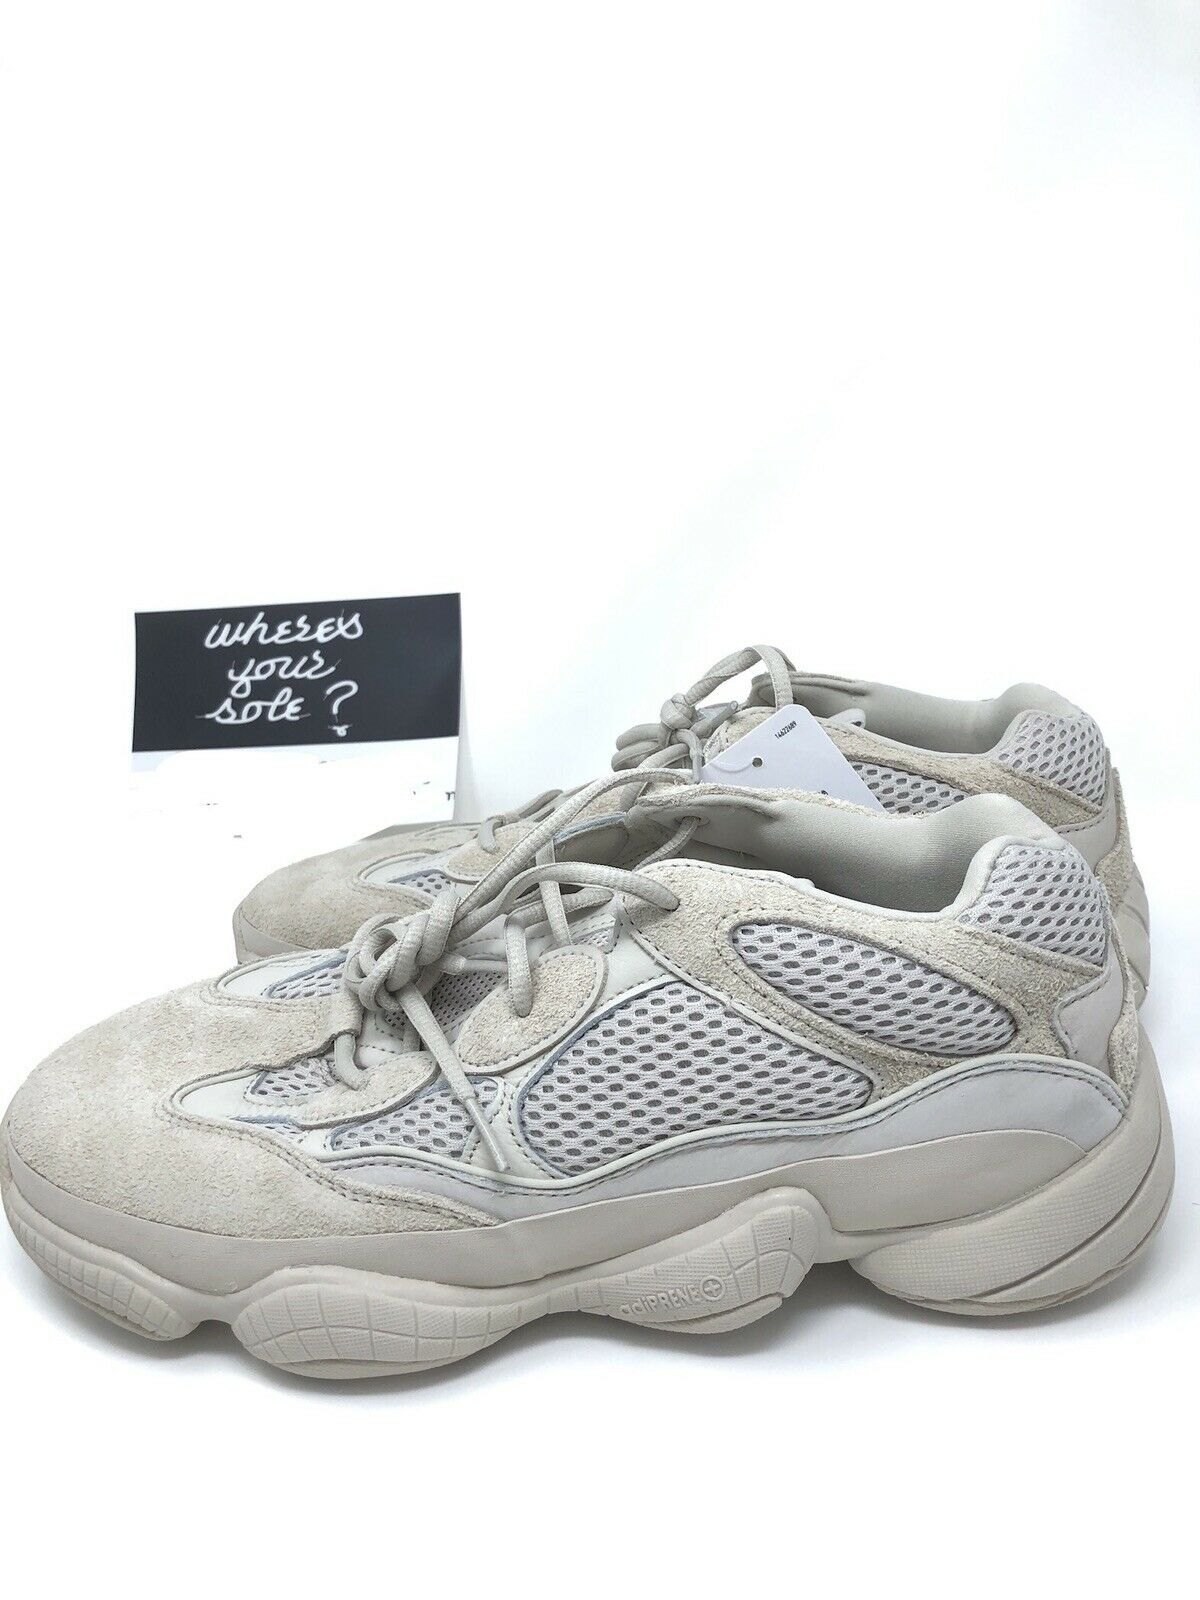 9cabf6509 Adidas Yeezy bluesh Desert Rat Size 11 Kanye West New DB2908 500 DS ...